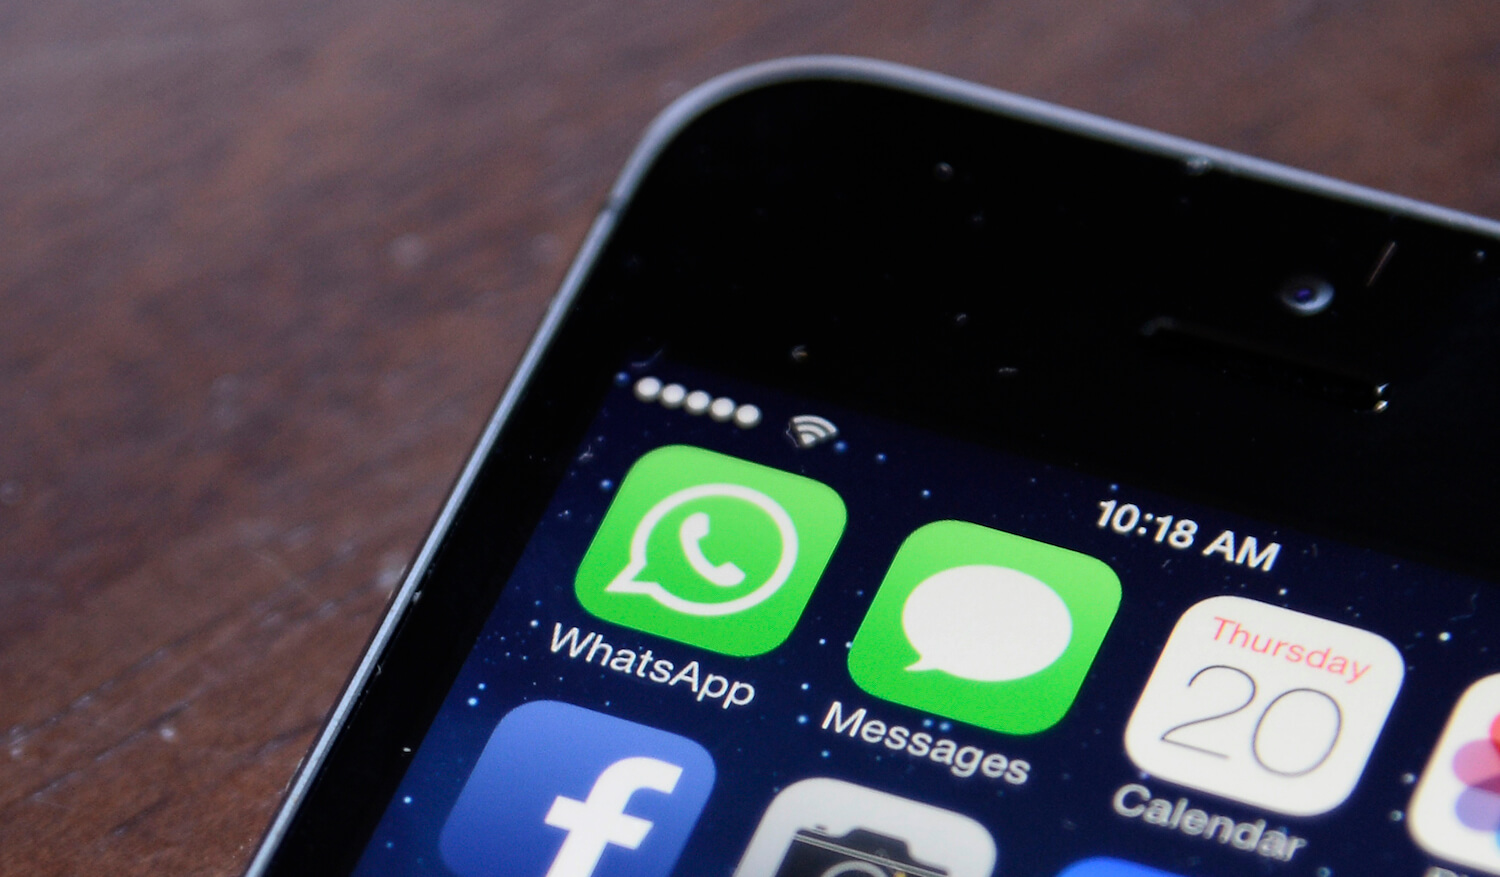 New features of WhatsApp for iPhone you will like it